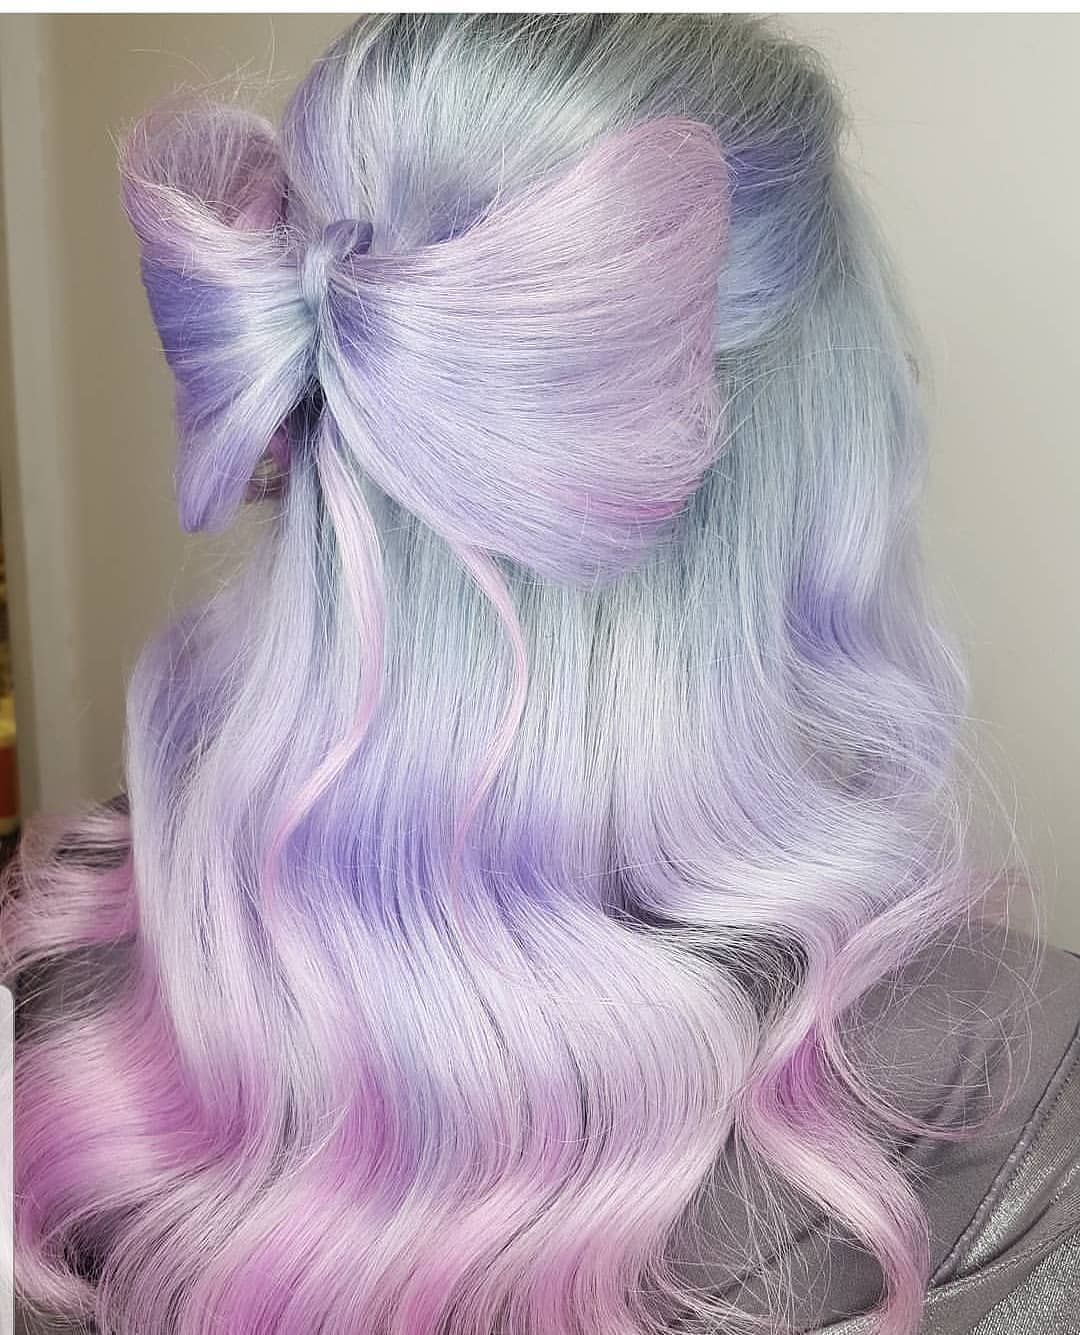 13 Sensational Schemes That Are: Pin On Hair